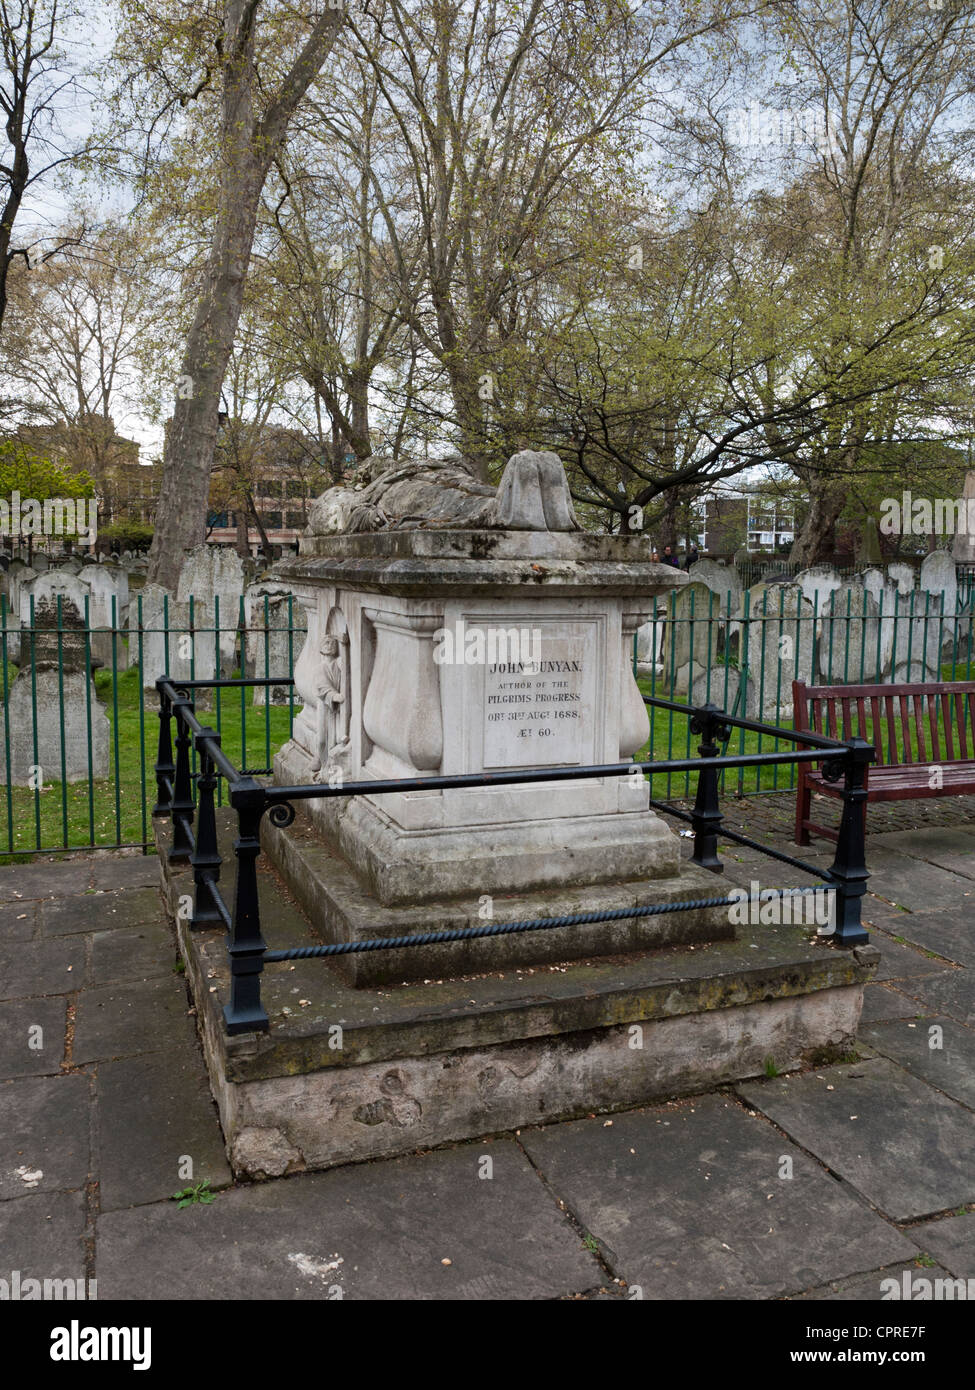 The grave of the English Christian writer and preacher known for his book The Pilgrim's Progress - Stock Image